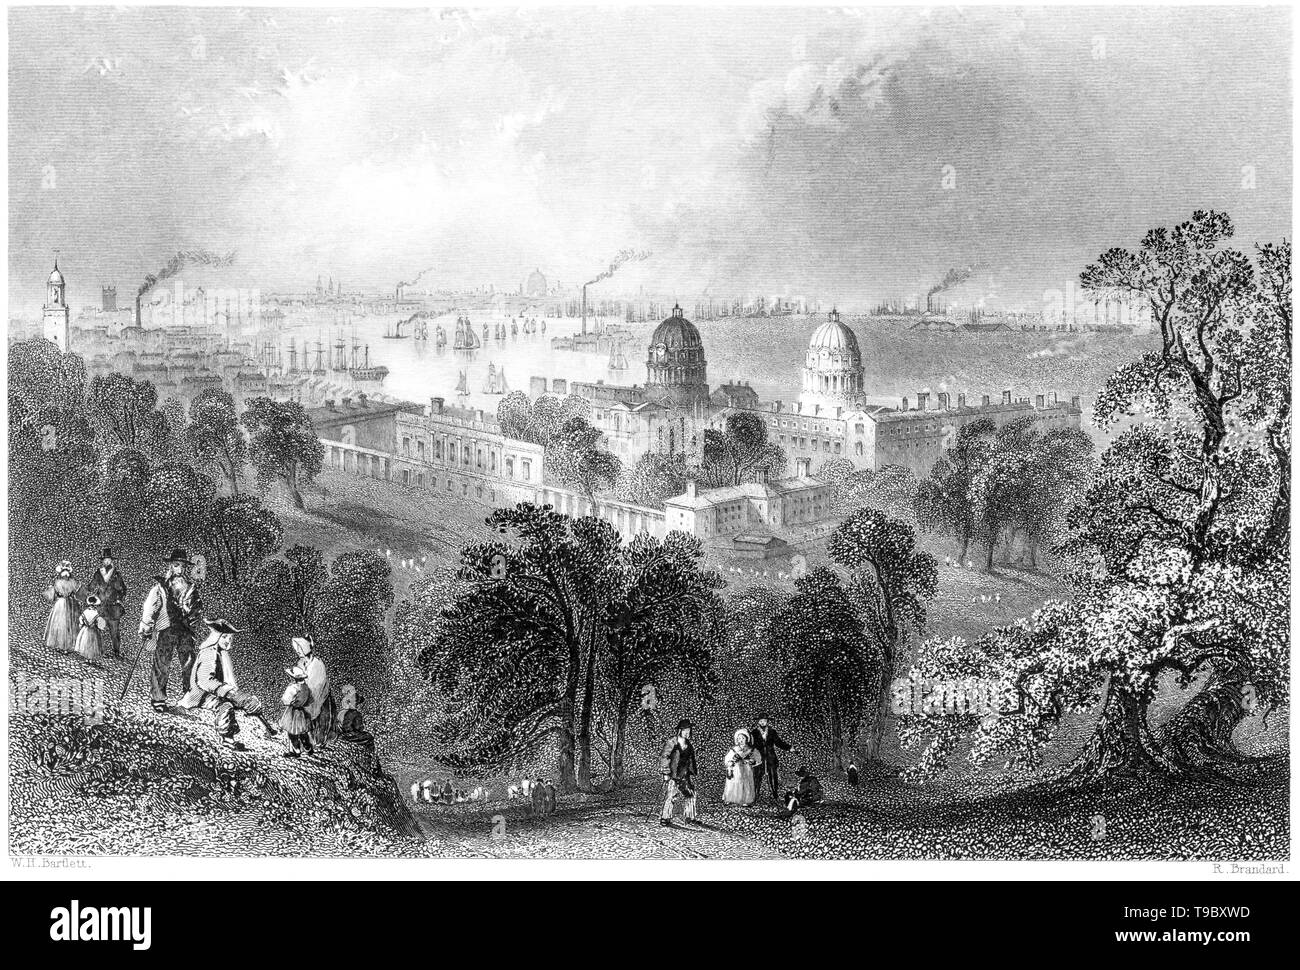 An engraving of London from Greenwich Park scanned at high resolution from a book published in 1842.  Believed copyright free. - Stock Image